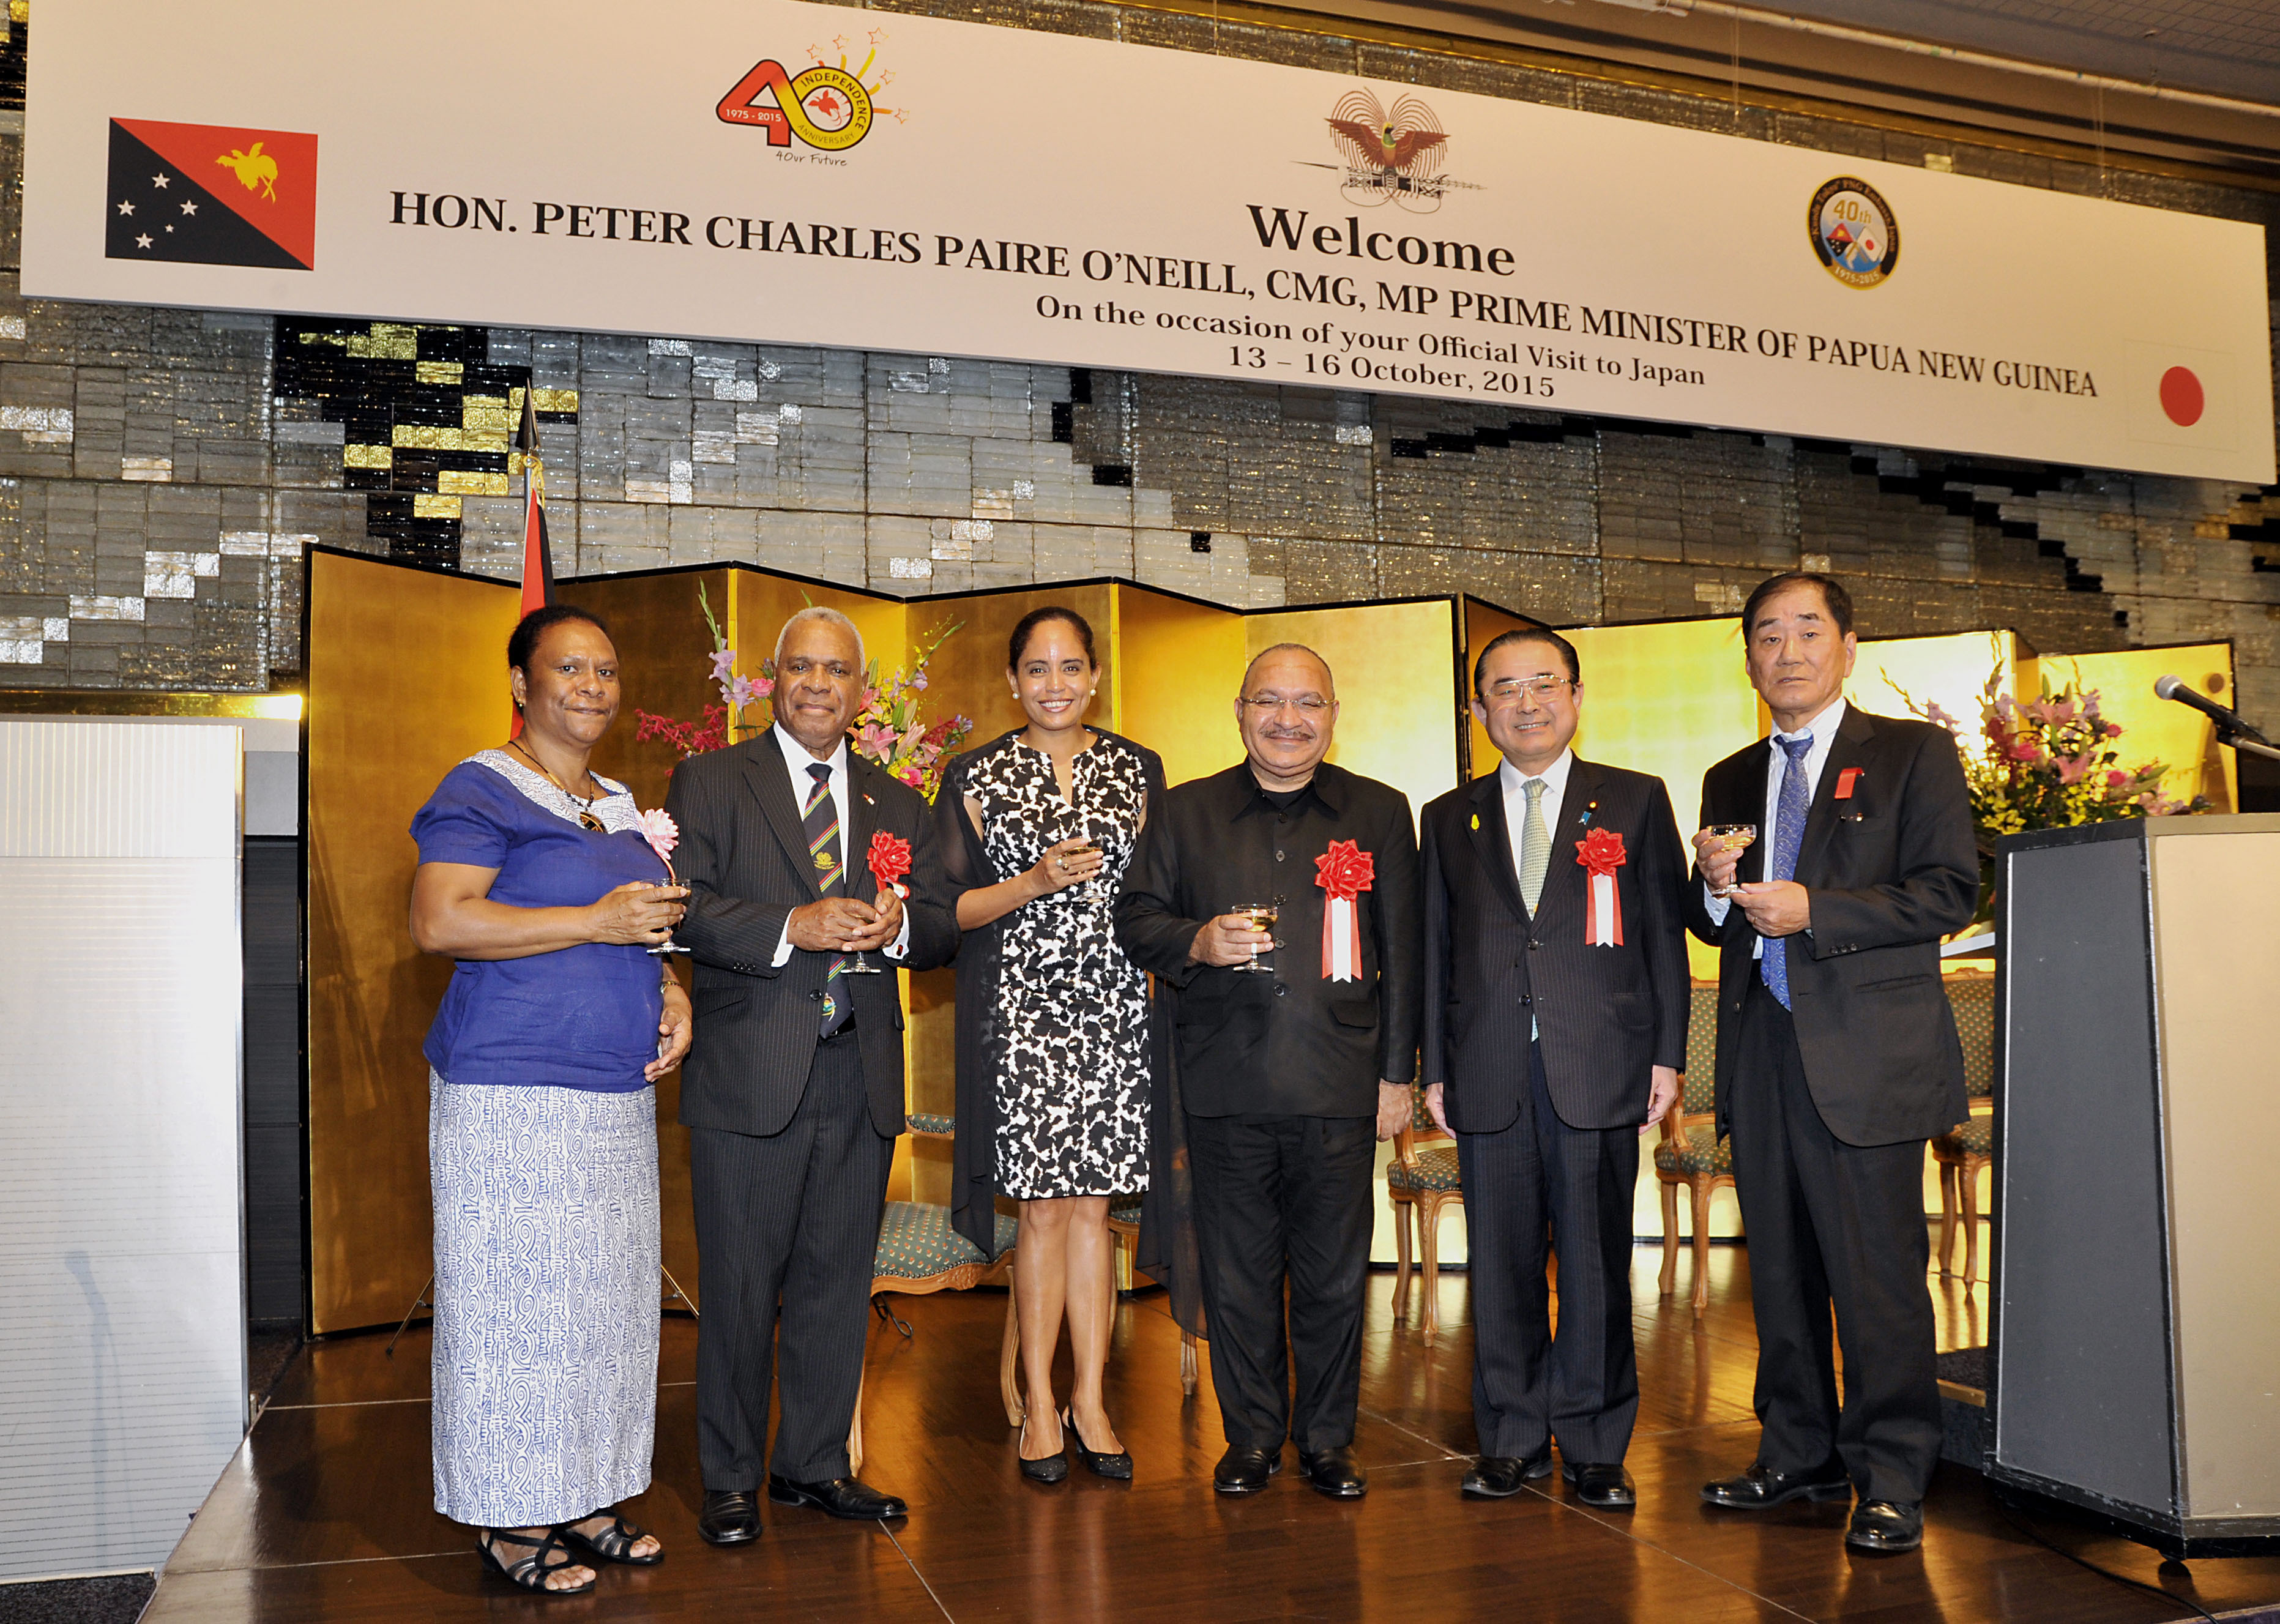 Papua New Guinea Prime Minister Peter O'Neill (third from right) and his wife Lynda Babao (third from left) pose with, from left, Anna Dusava, wife of the Papua New Guinean ambassador; Papua New Guinea Ambassador Gabriel Dusava; Chairman of the Japan-PNG Parliamentary League Kazunori Tanaka; and the Chairman of the Japan-PNG Association Katsuo Yamashita at a reception on Oct. 13, during O'Neill's official working visit to Japan.   YOSHIAKI MIURA